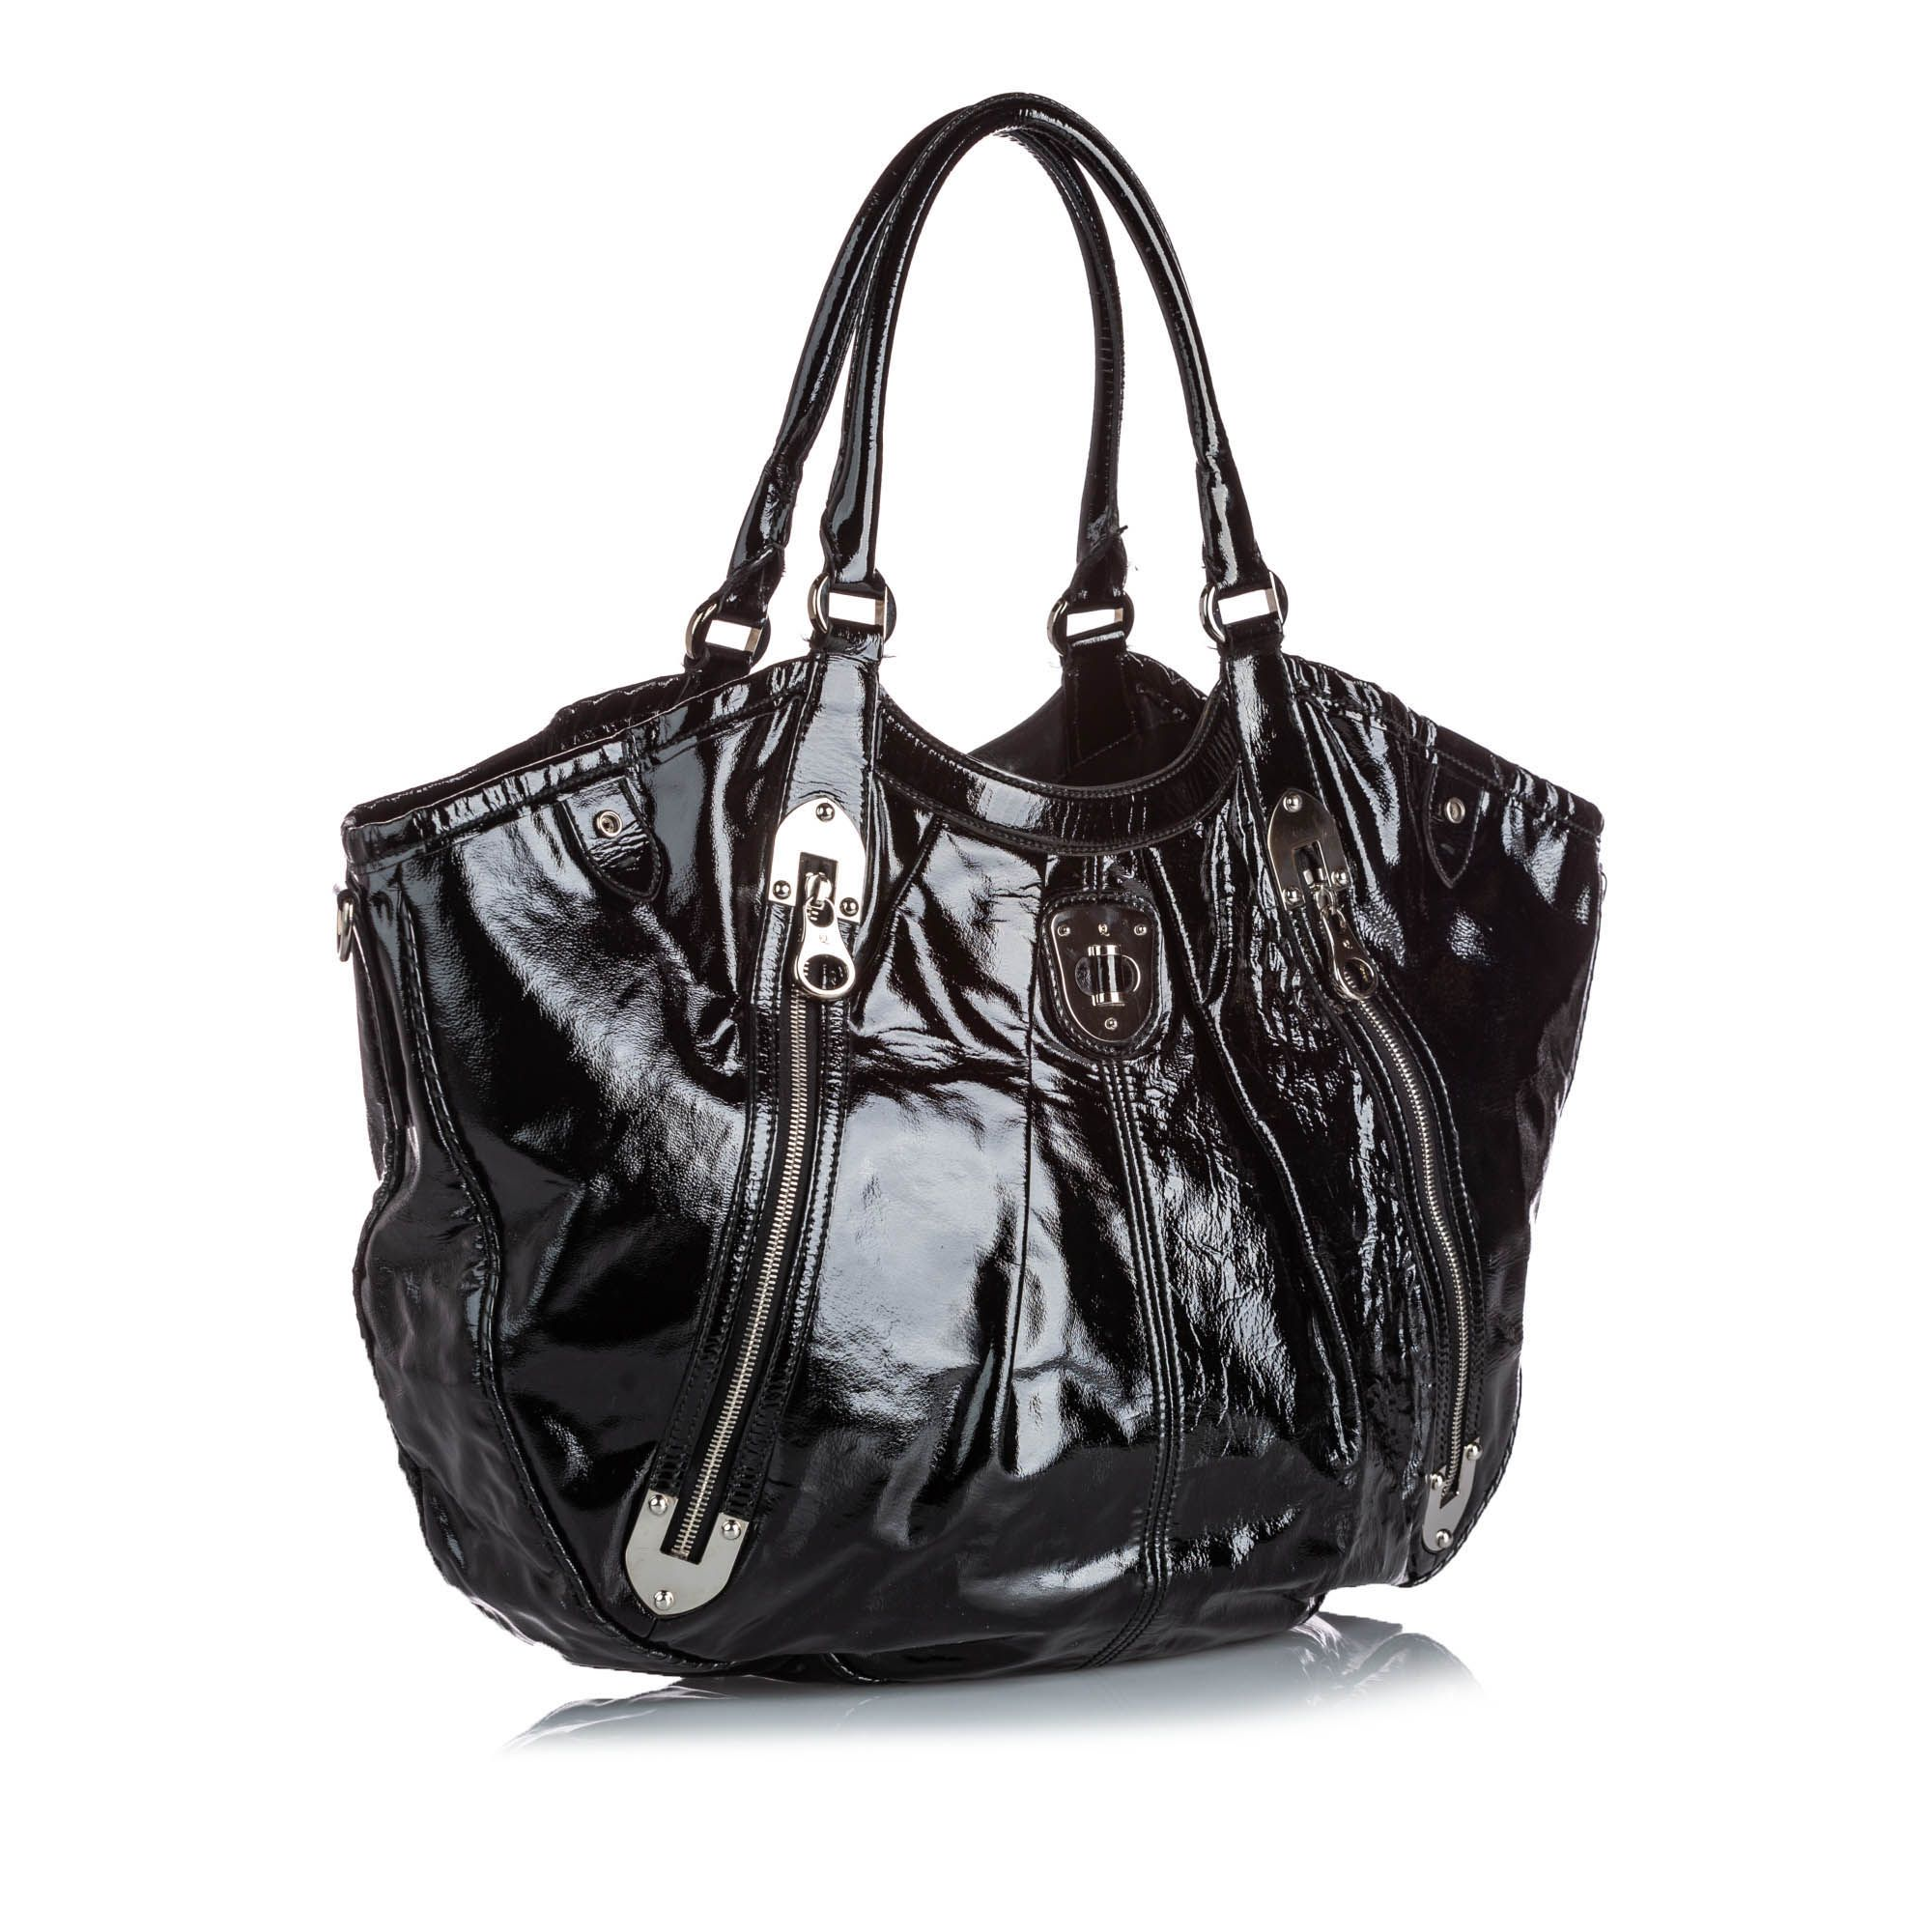 Vintage Alexander McQueen Patent Leather Tote Bag Black